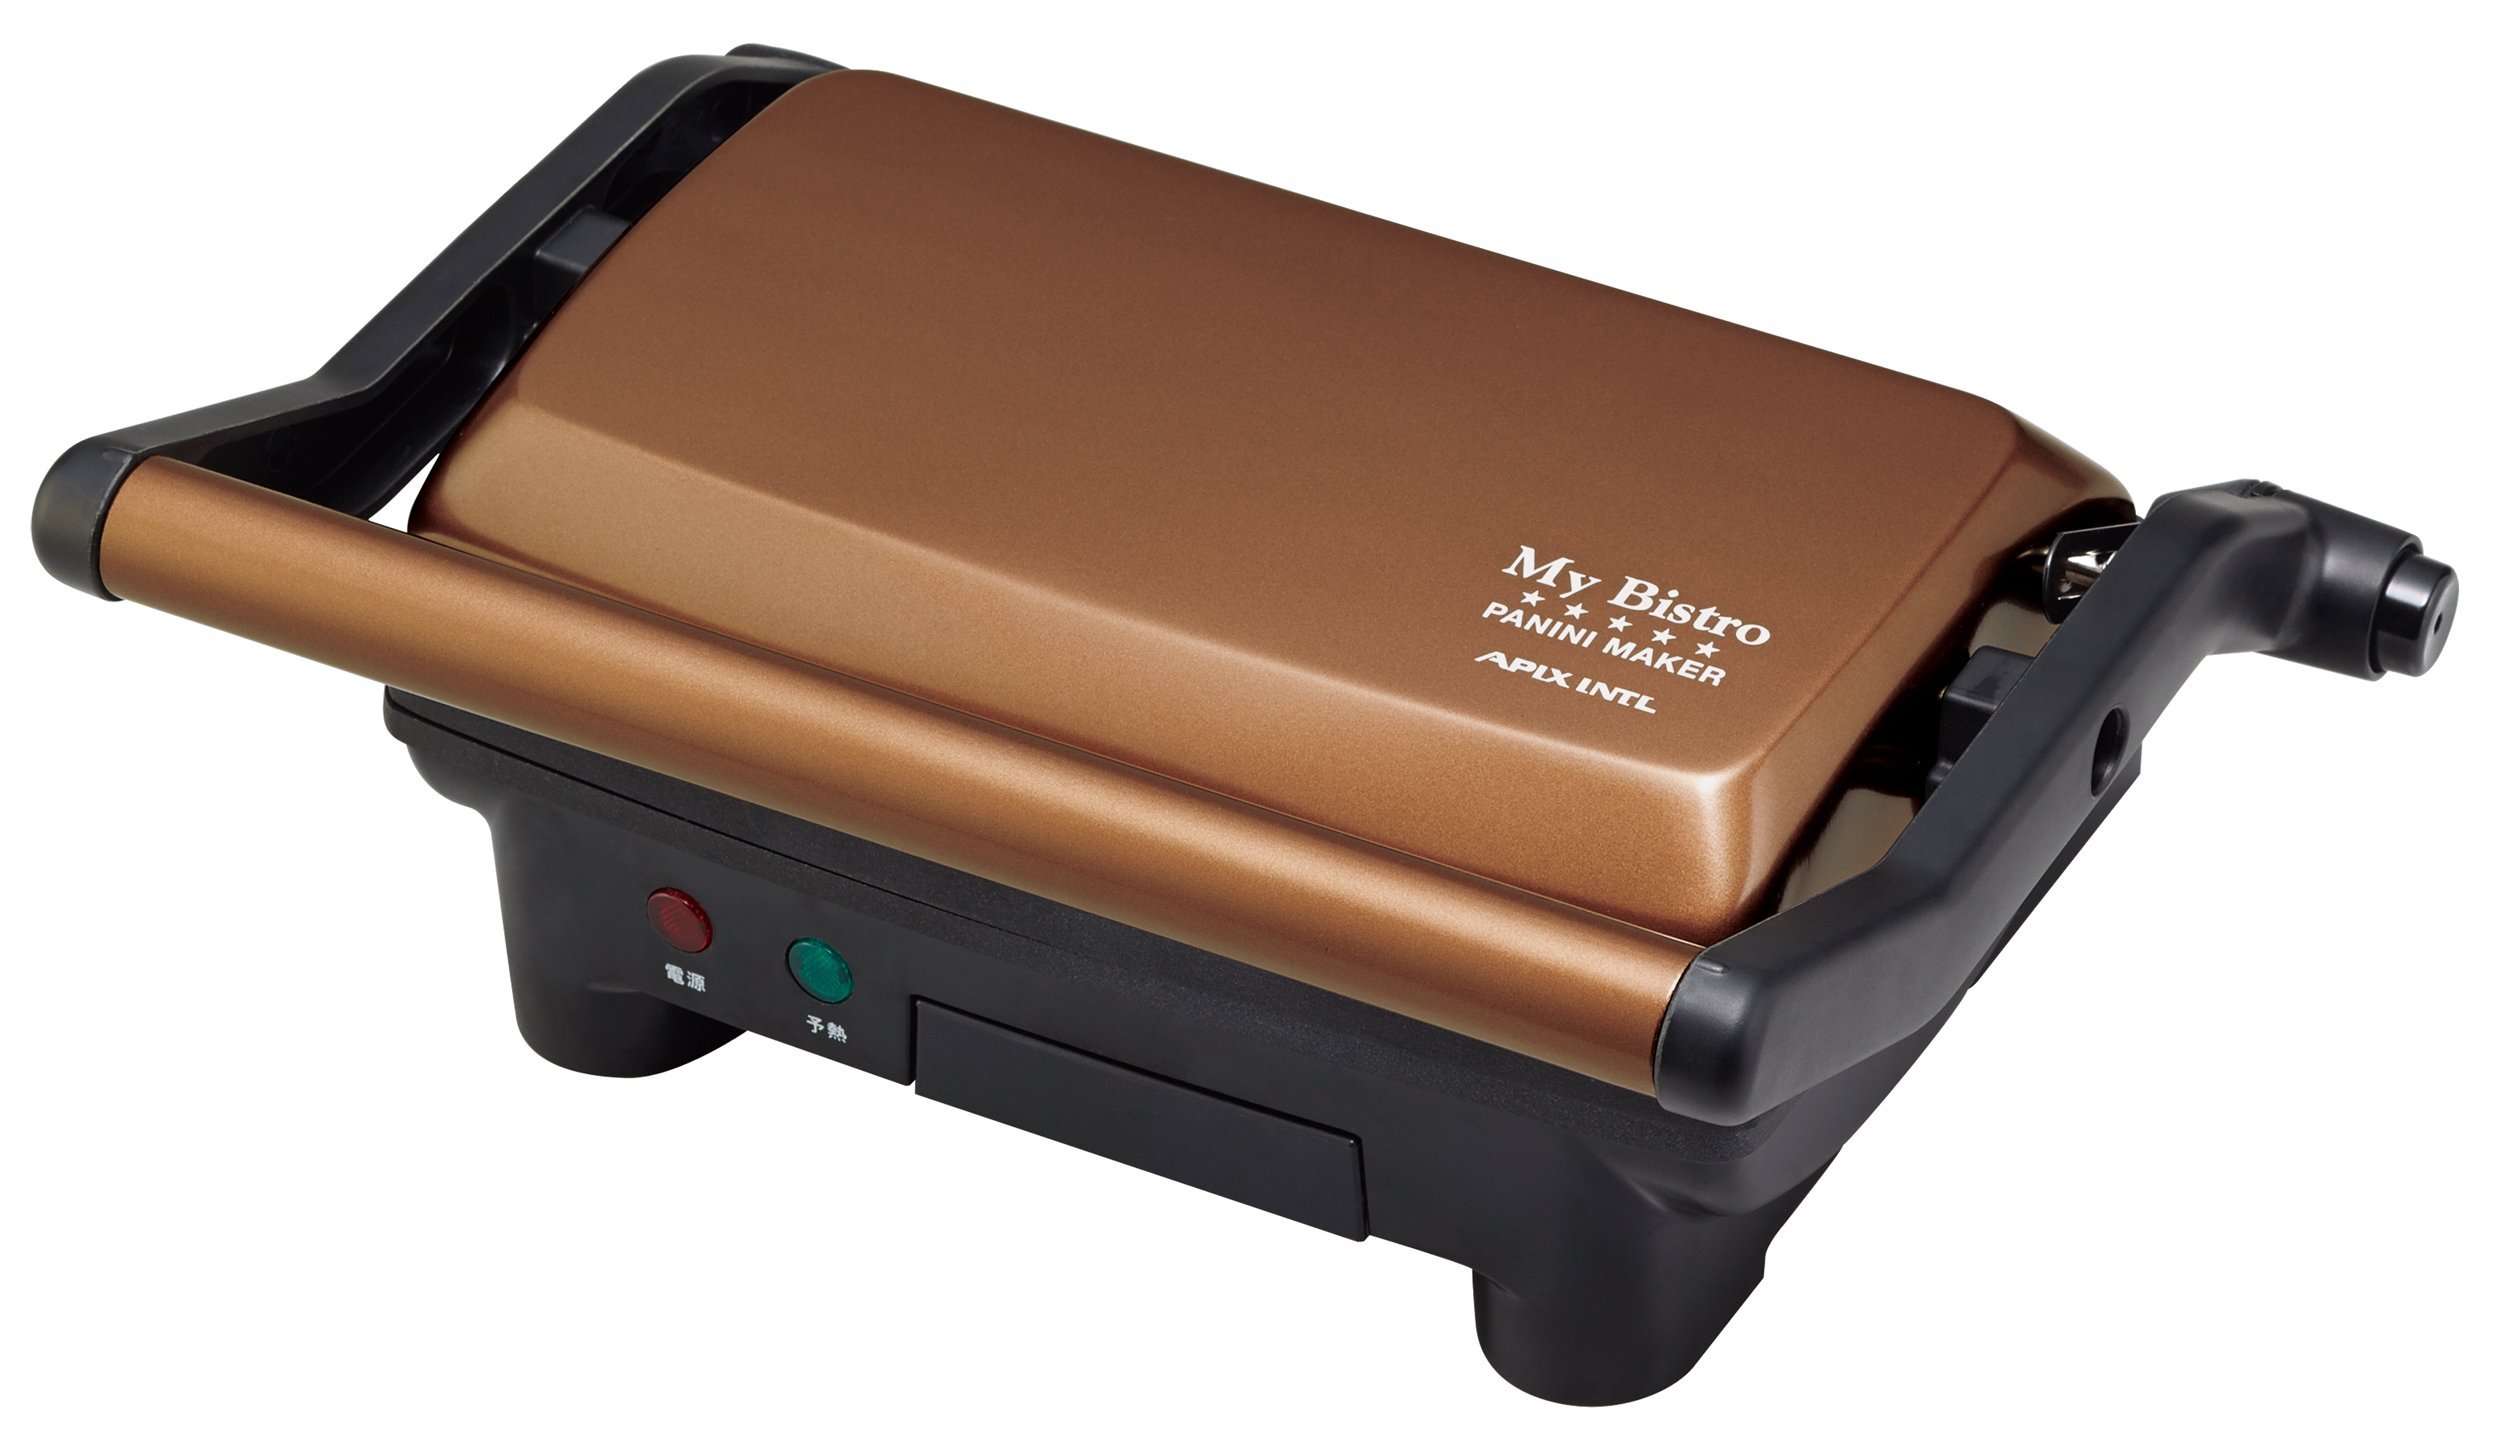 APIX『My Bistro』PANINI MAKER APM-276-BR (Brown)